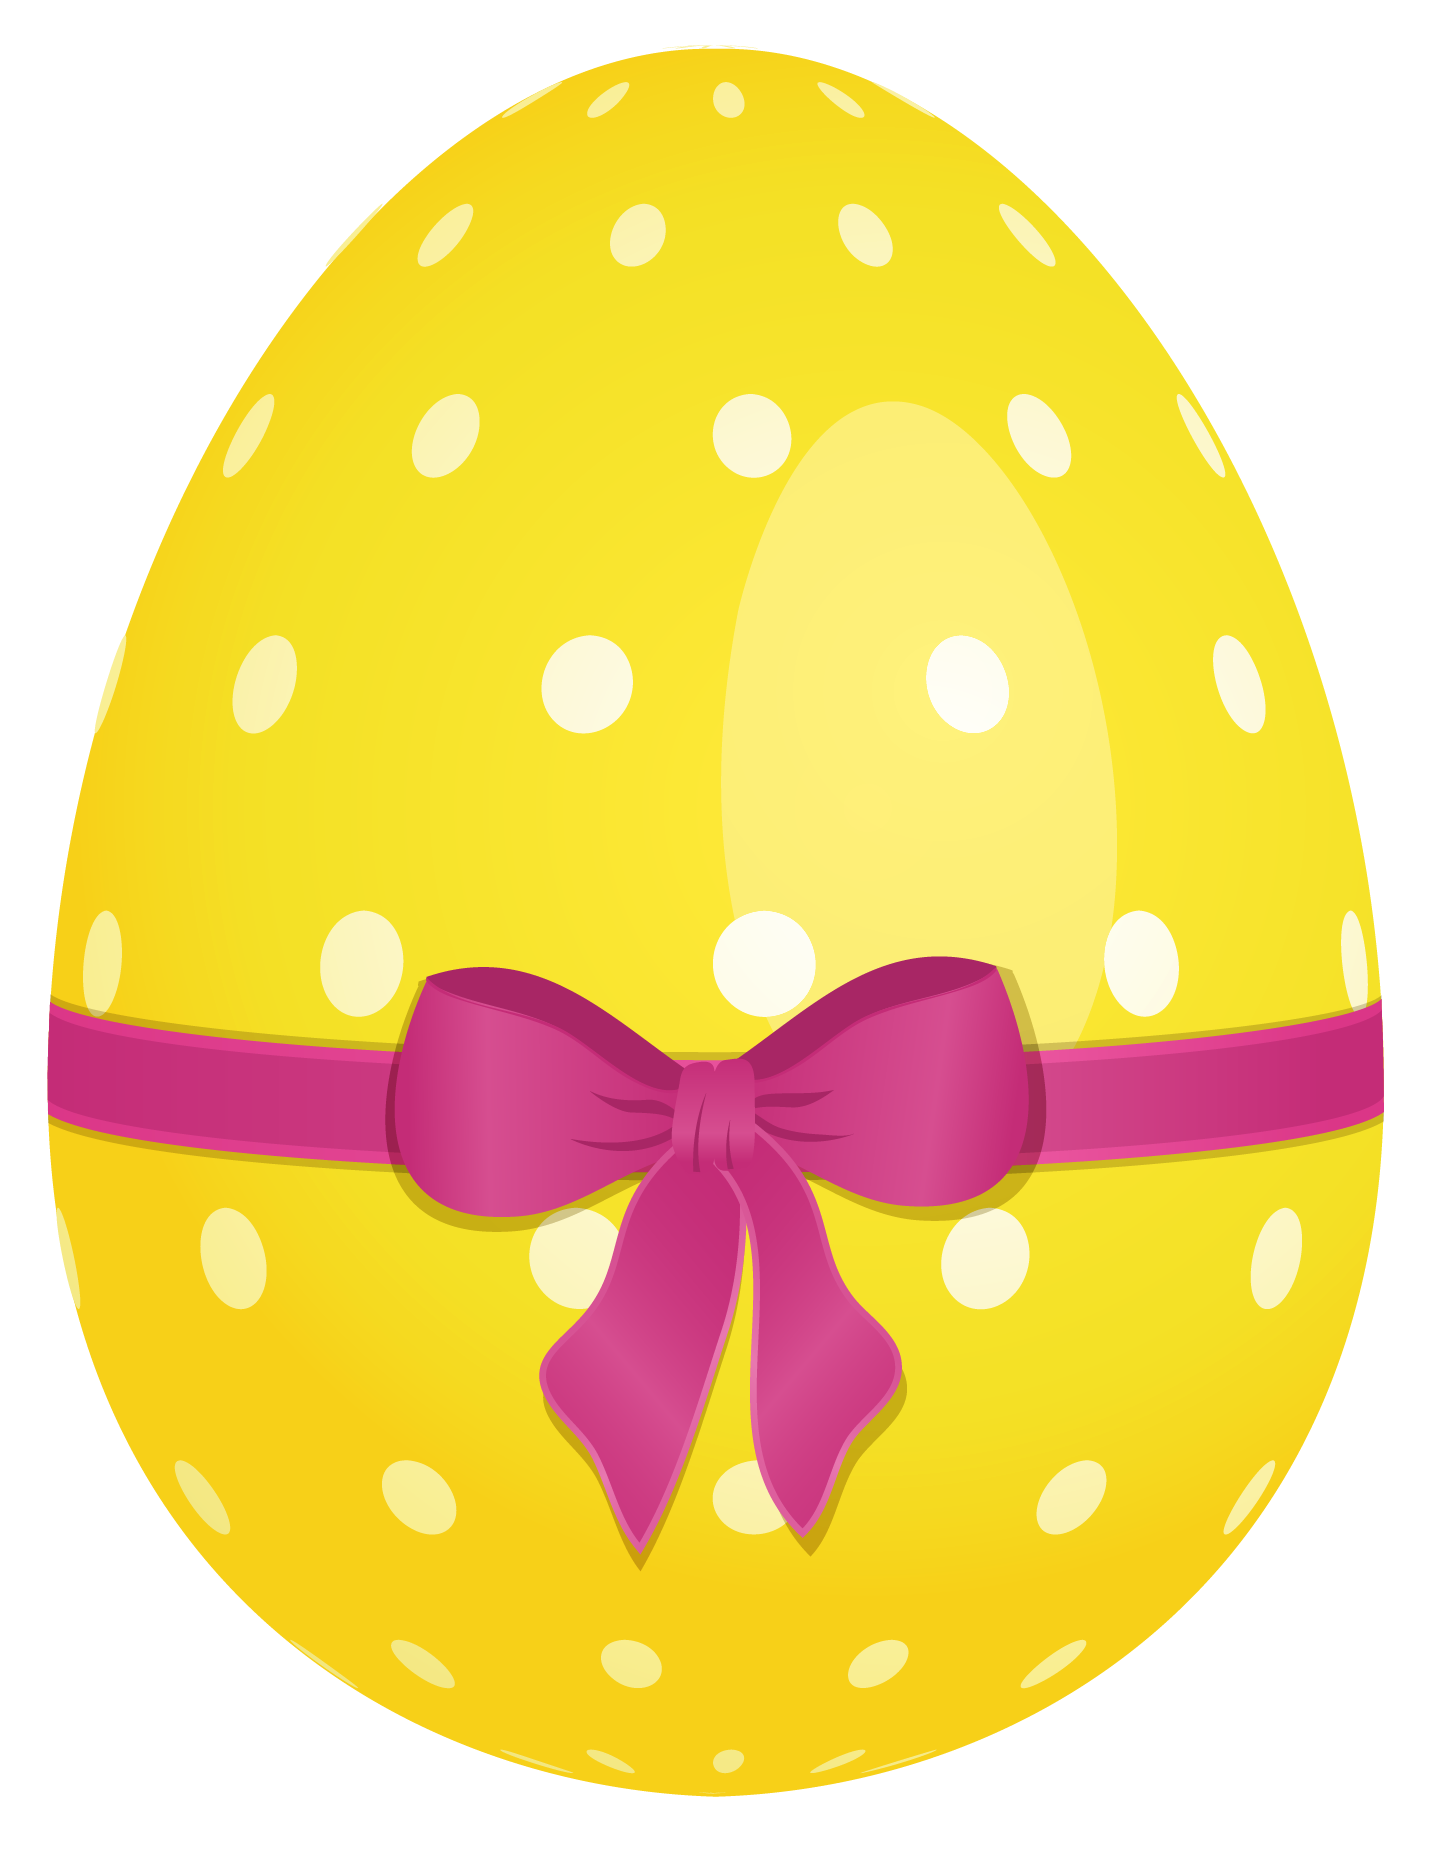 Easter egg free clipart svg download Pink easter egg clipart - ClipartFox svg download